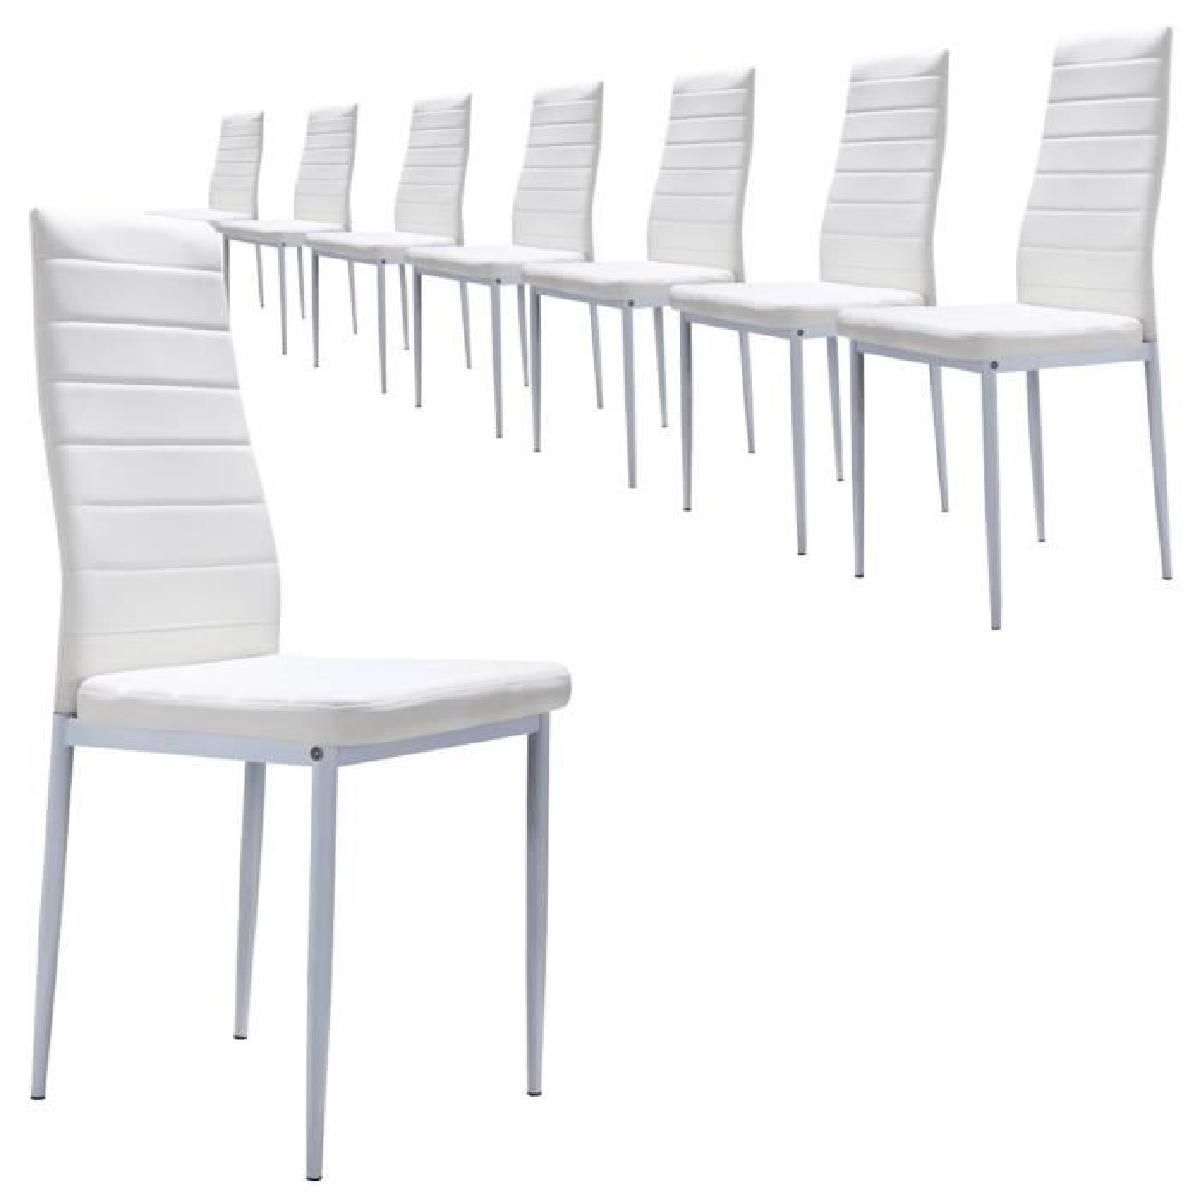 S2 Blanc Lot De 8 Chaises Design Et Ultra Confort Simili Cuir Chaise Design Mobilier De Salon Lot De Chaises